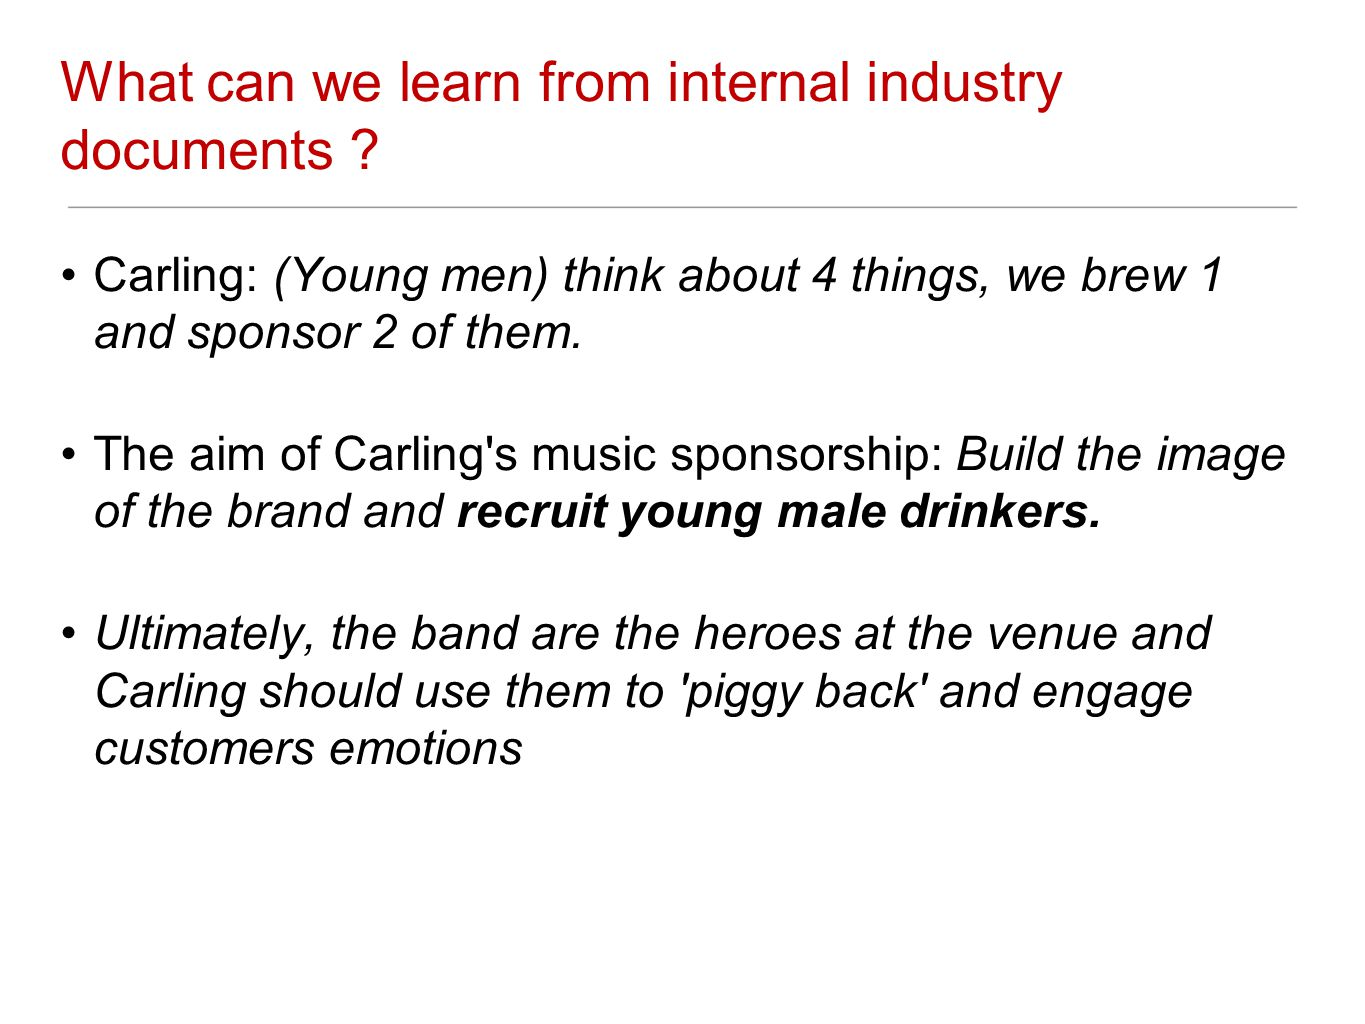 What can we learn from internal industry documents ? Carling: (Young men) think about 4 things, we brew 1 and sponsor 2 of them. The aim of Carling's